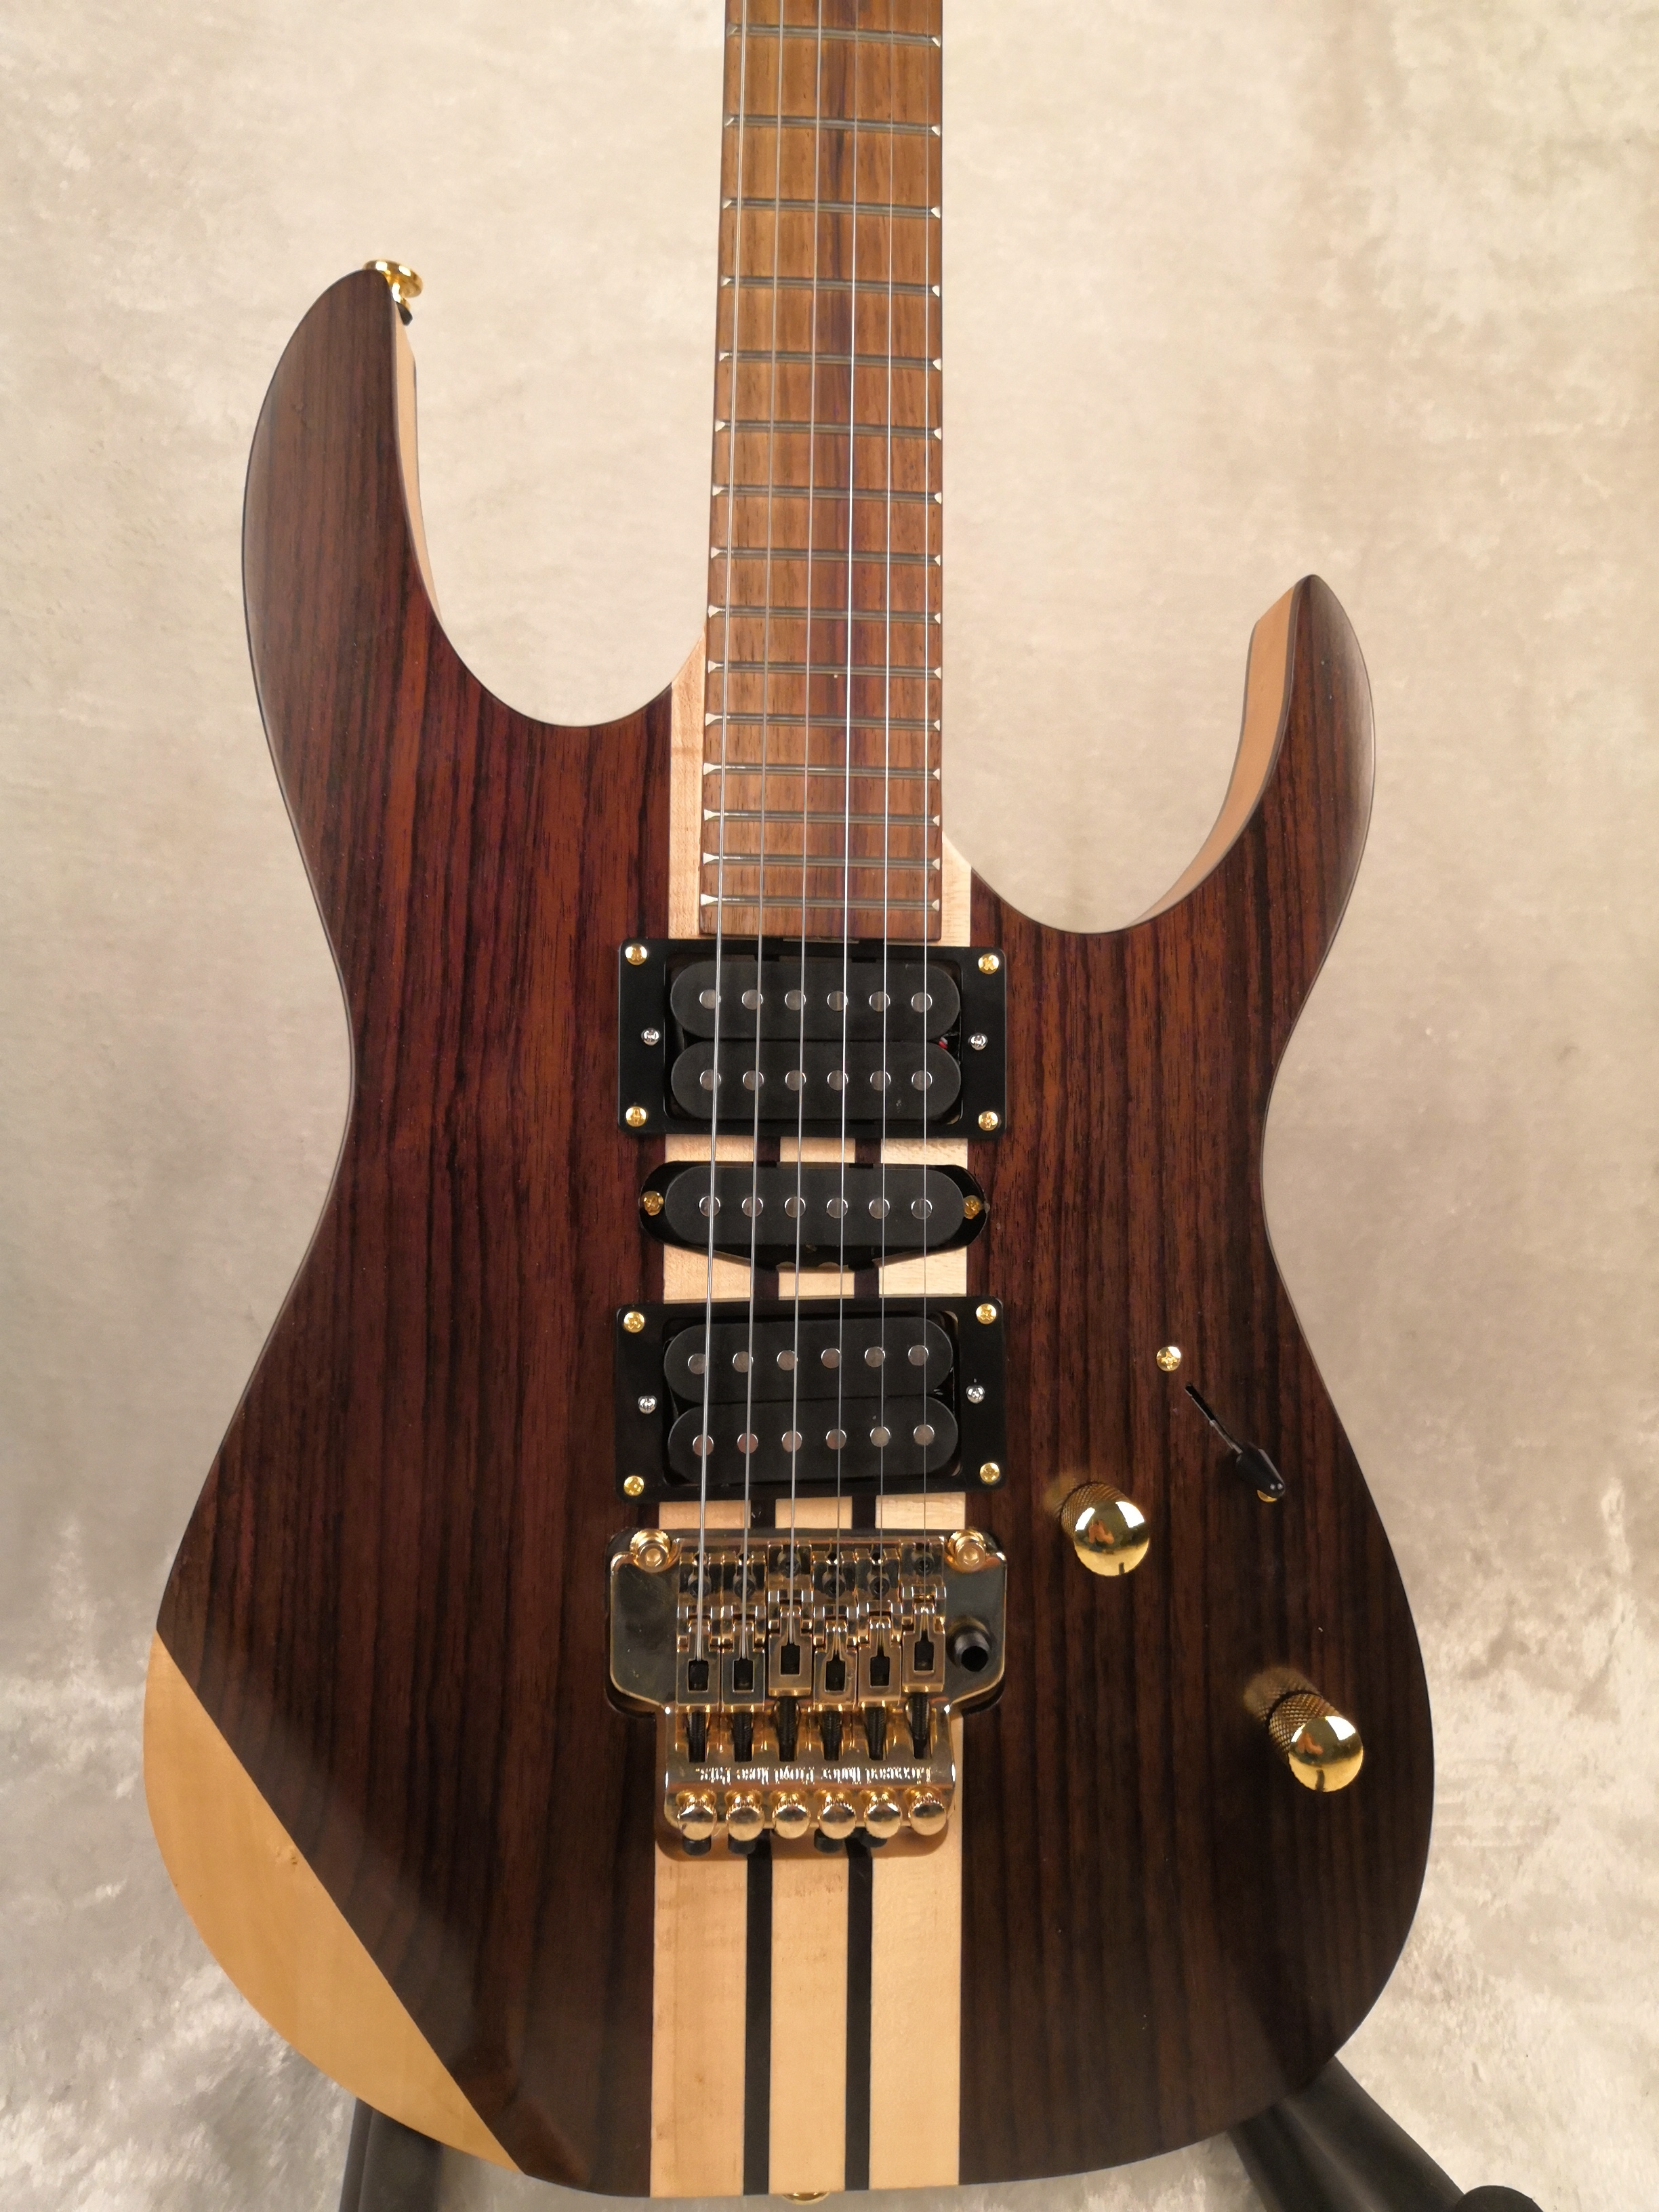 6 Strings Rosewood Body One-piece Set Neck Gold Hardware Electric Guitar Free Shipping